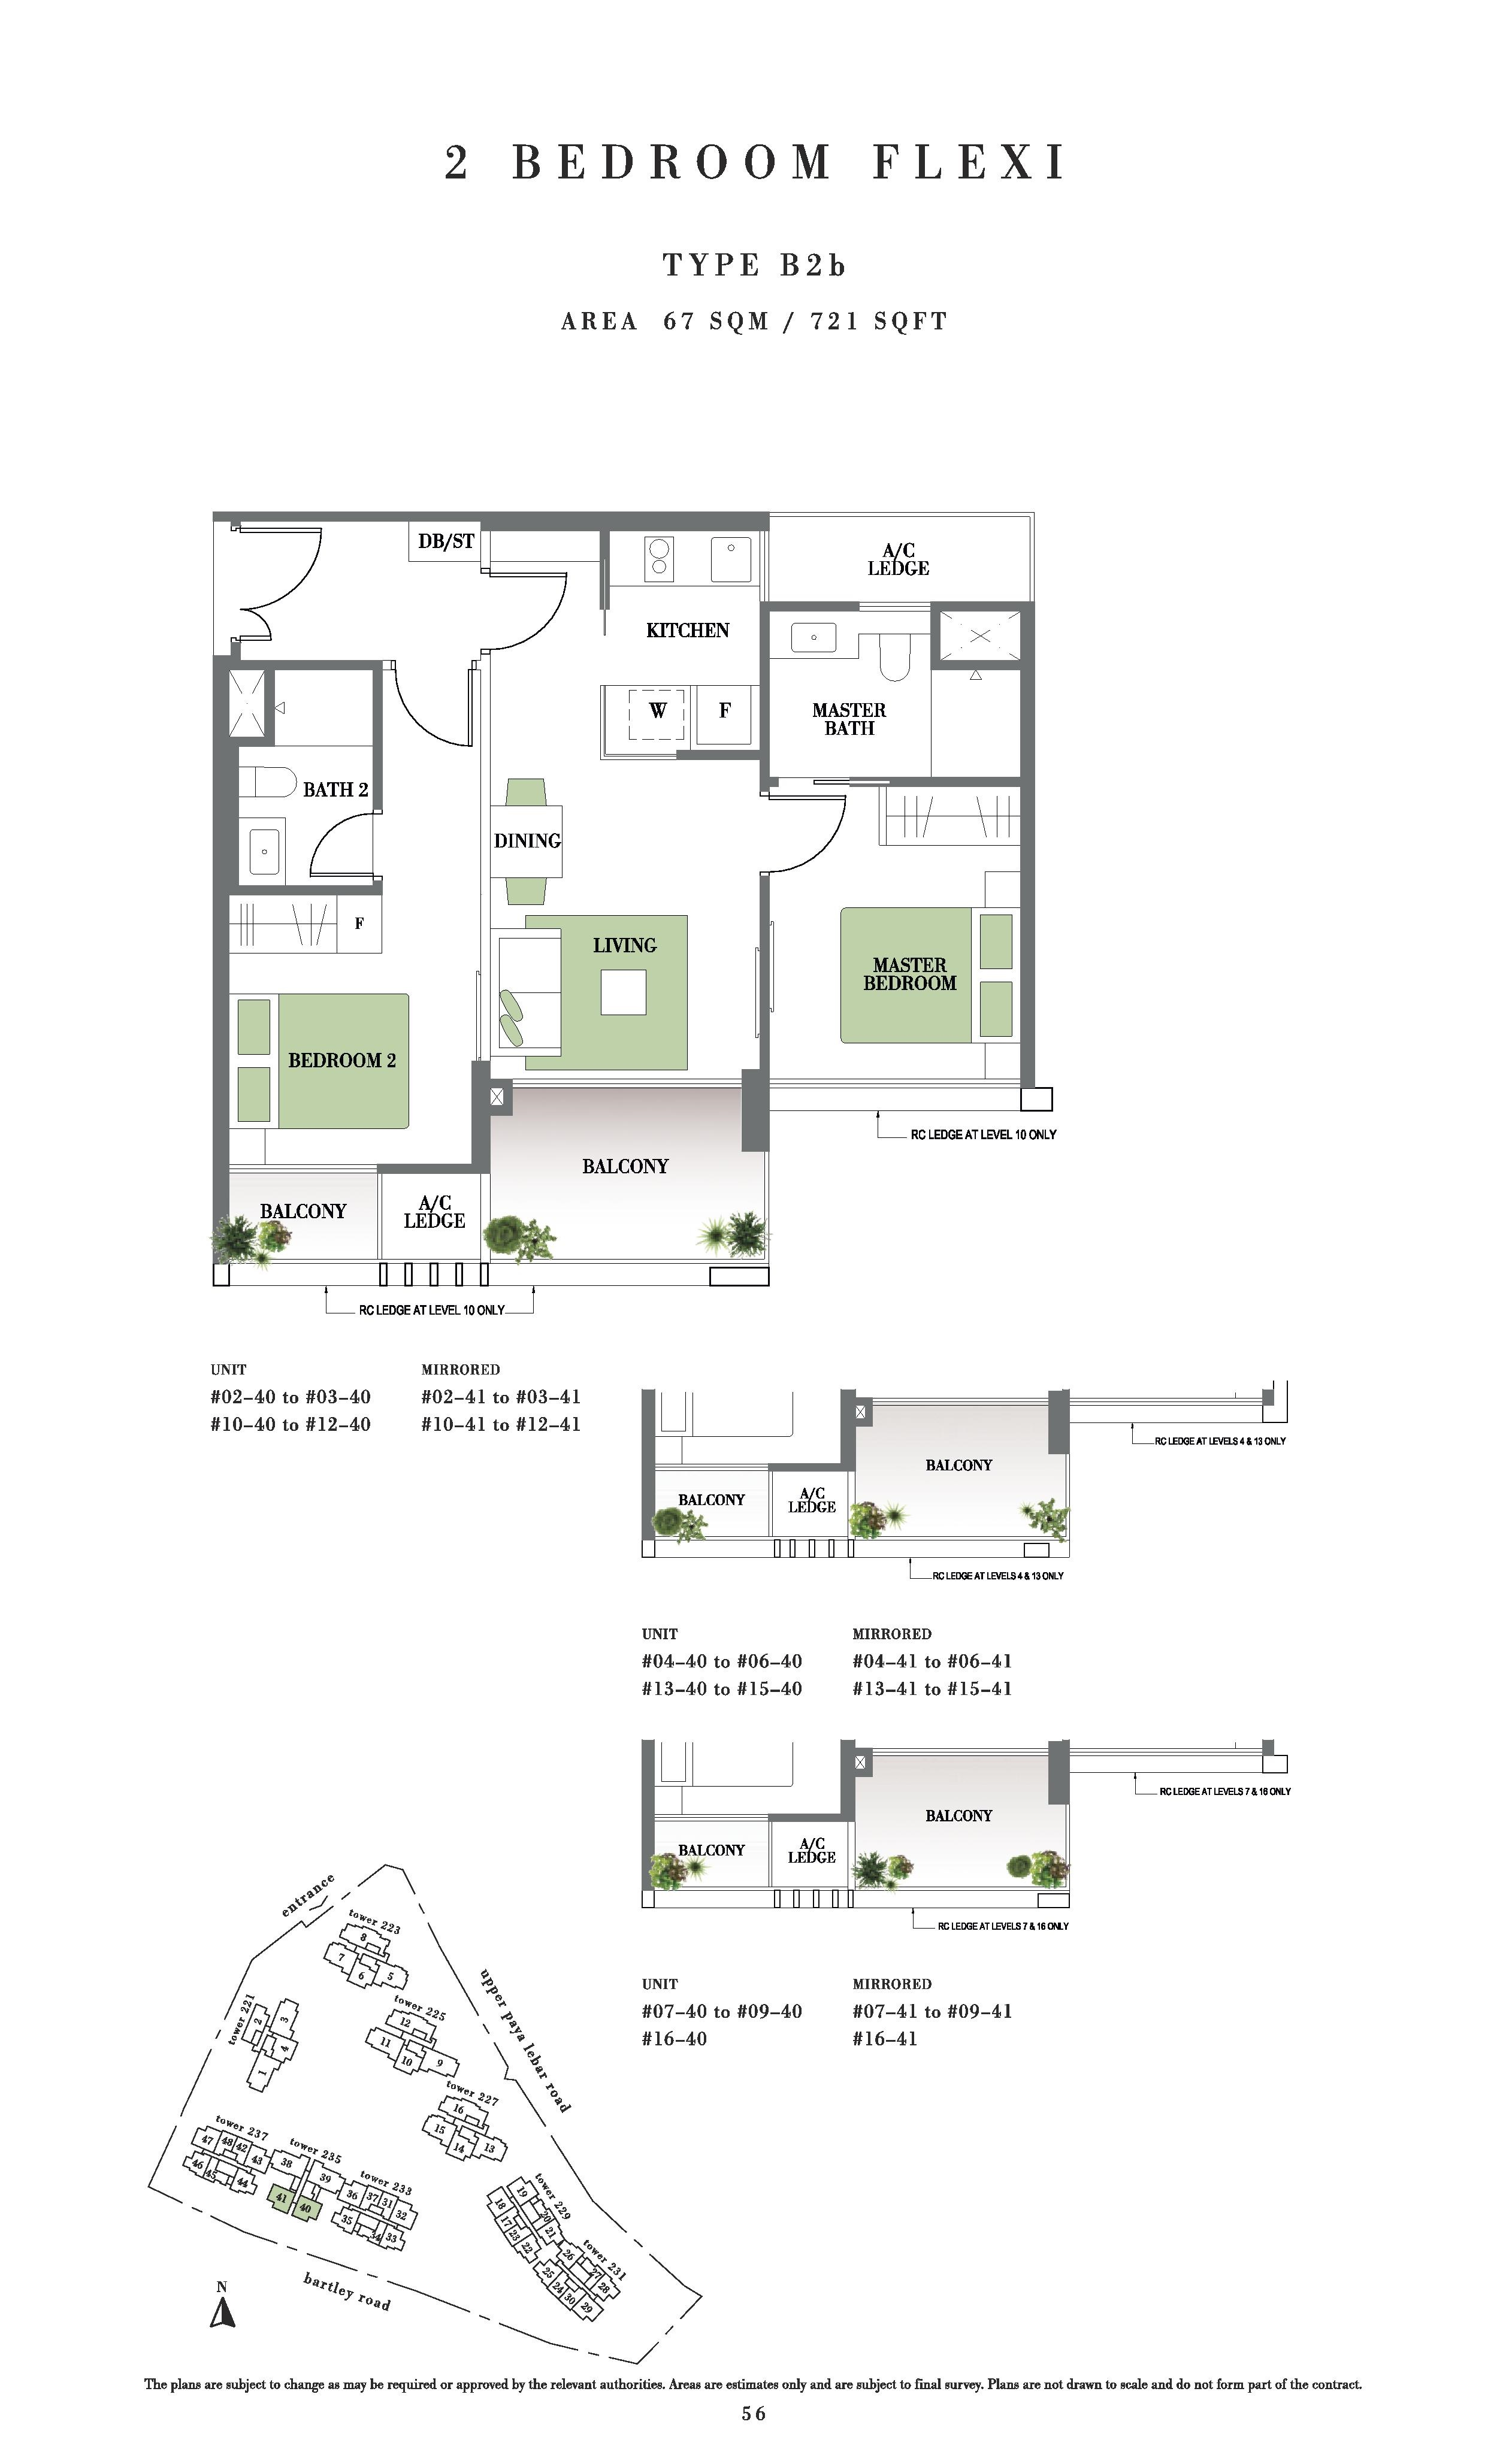 Botanique @ Bartley 2 Bedroom Flexi Floor Plans Type B2b